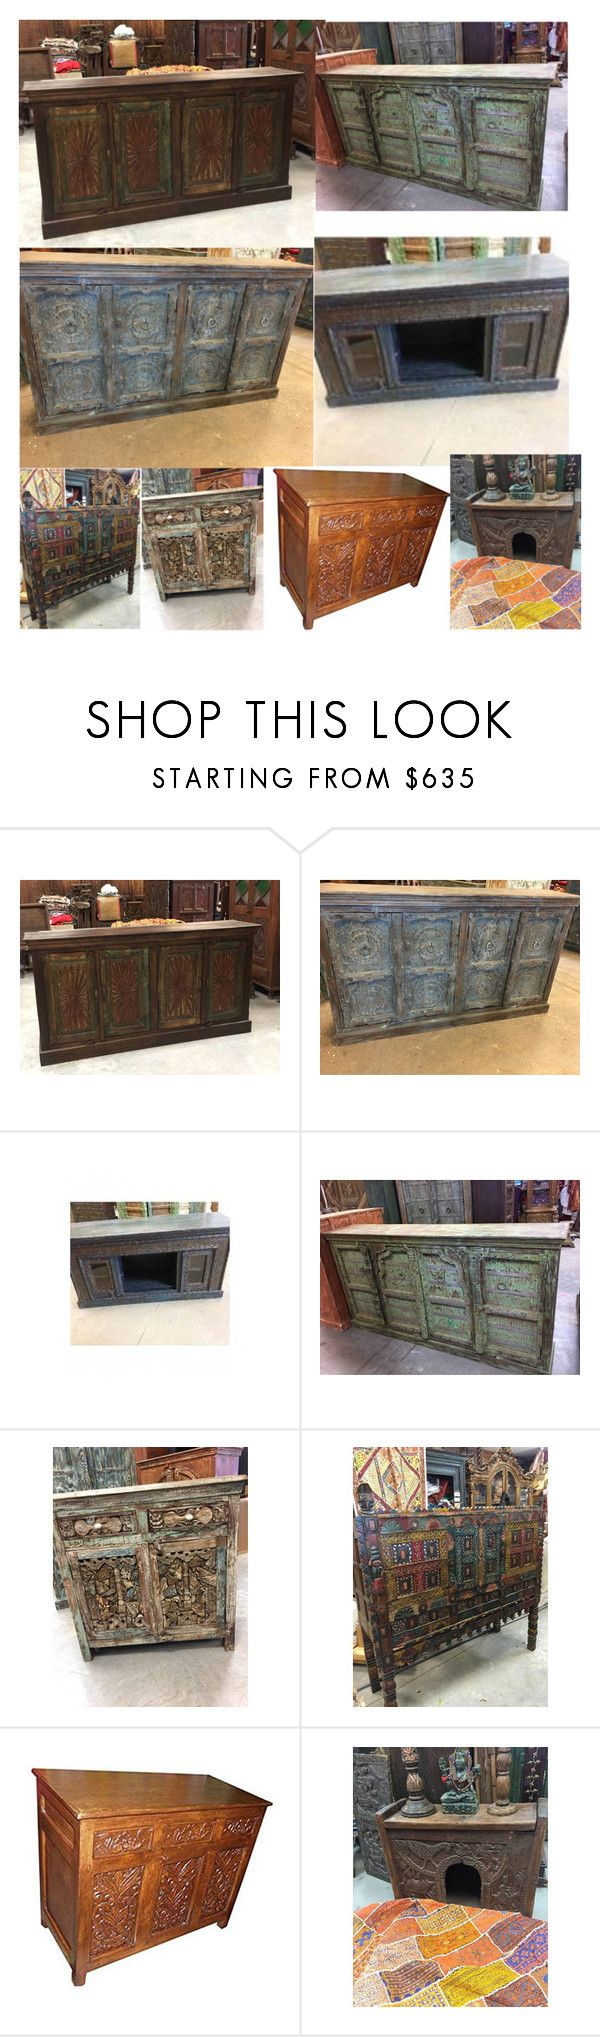 """""""Sideboard Handmade Furniture"""" by era-chandok ❤ liked on Polyvore featuring interior, interiors, interior design, home, home decor, interior decorating, sale, sideboard, offer and antiquefurnitu"""